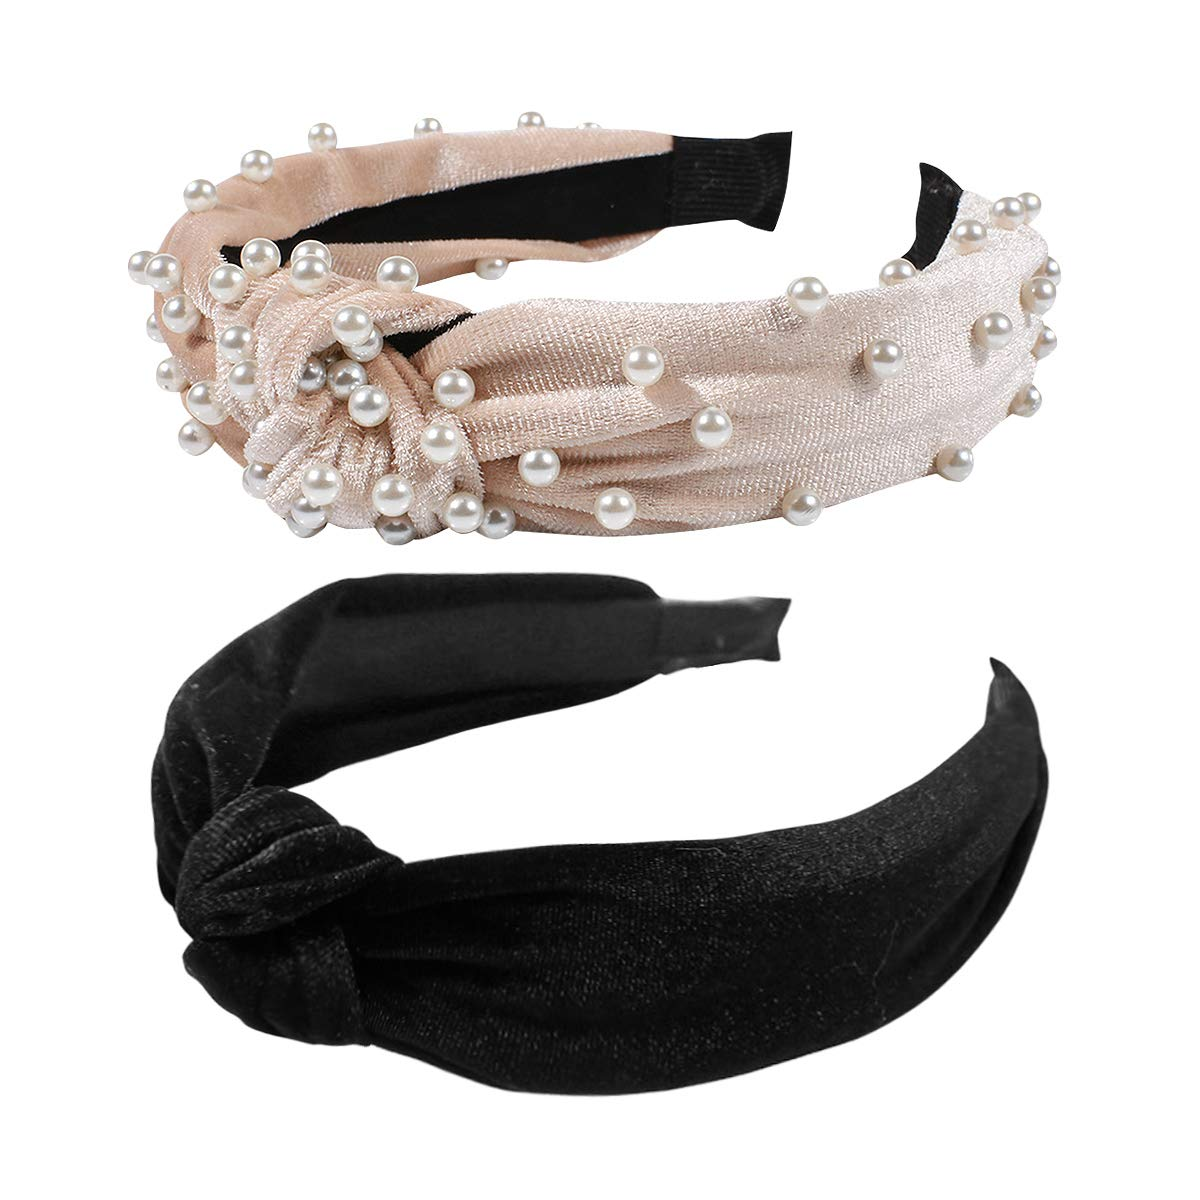 2Pcs Headbands for Women, BEBEEPOOPearl Headbands with Velvet Knotted Wide Headbands, Faux Pearl Elastic Hair Hoops Fashion Vintage Styling Hair Accessories